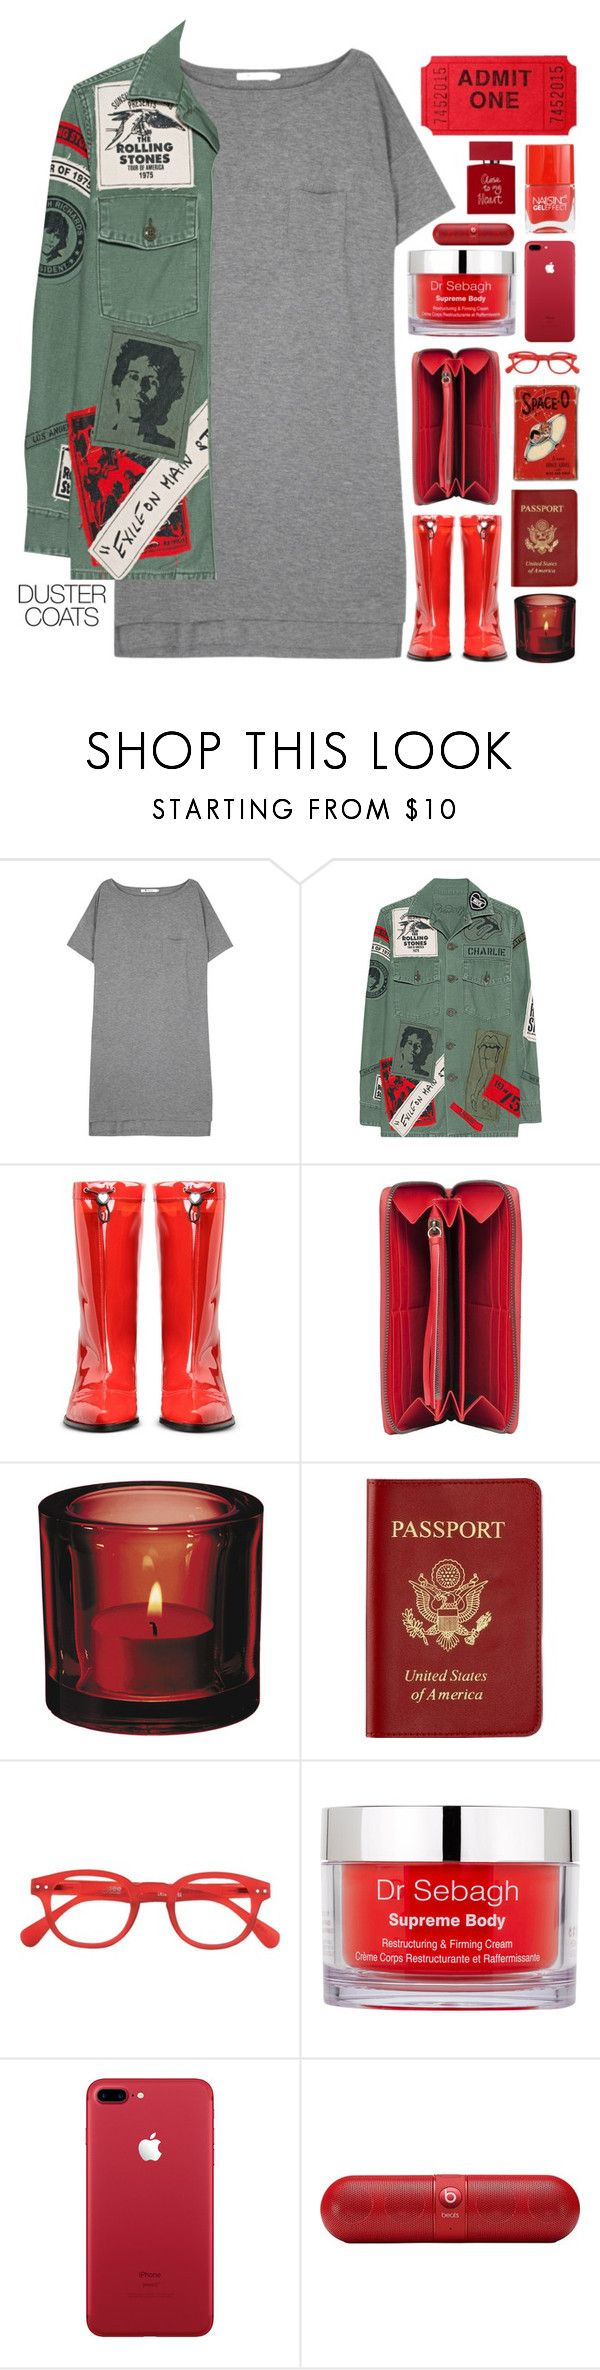 """""""I built a friend with three pieces of plastic and a pen"""" by mint-green-macaroonn ❤ liked on Polyvore featuring T By Alexander Wang, MadeWorn, Love Moschino, Balenciaga, iittala, Passport, See Concept, Dr. Sebagh, Beats by Dr. Dre and Nails Inc."""